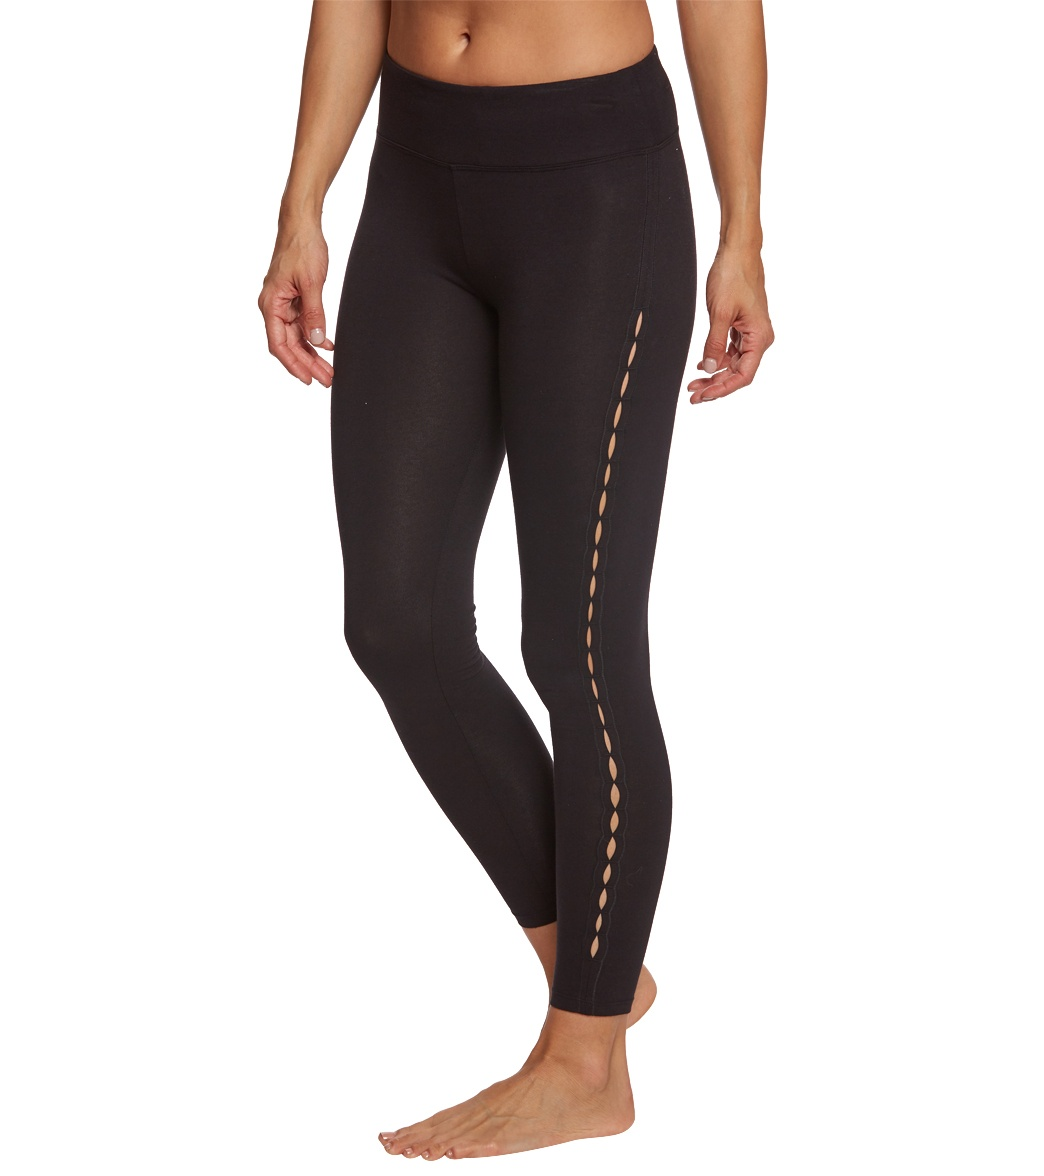 8aa2bfb85927c4 Betsey Johnson Infinity Loop Thigh Cutout Cotton Yoga Leggings at ...